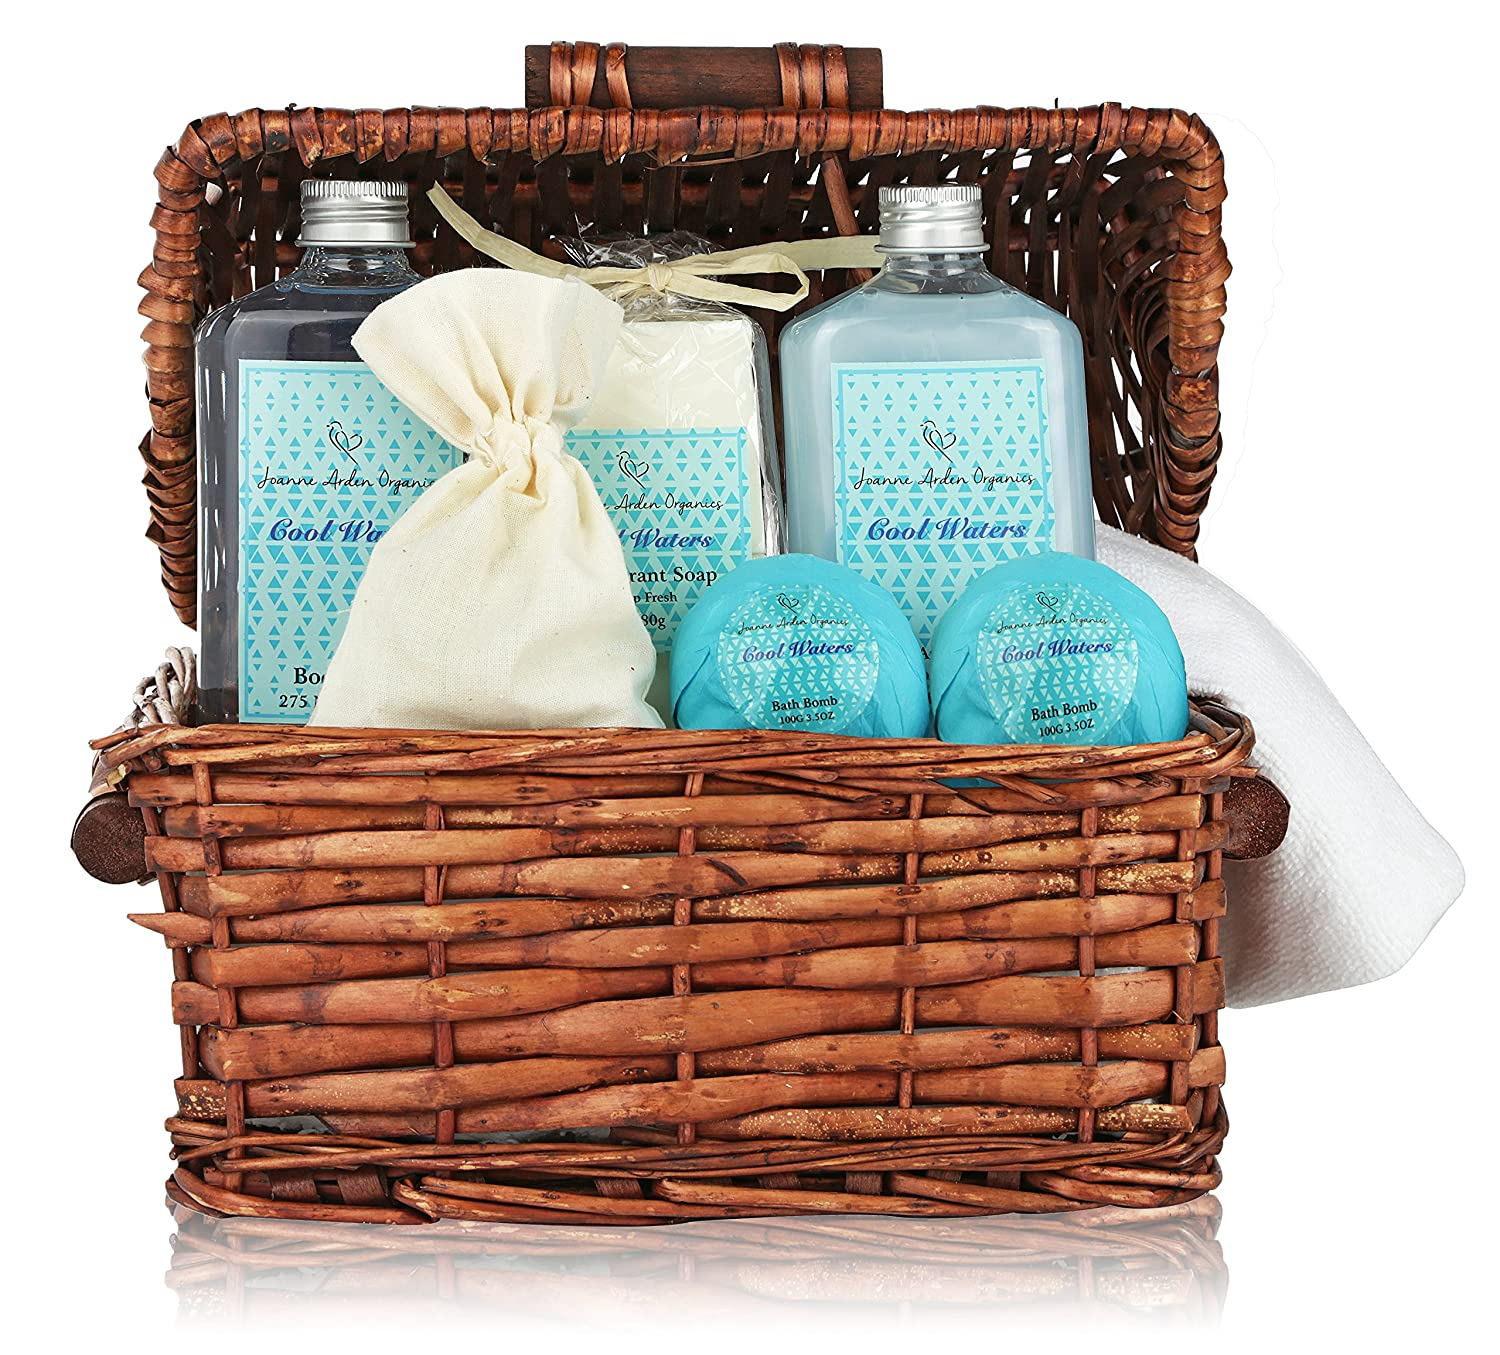 amazoncom deluxe spa basket cool waters gift baskets for men women bath body gift set for christmas gift birthday gift thank you gift basket